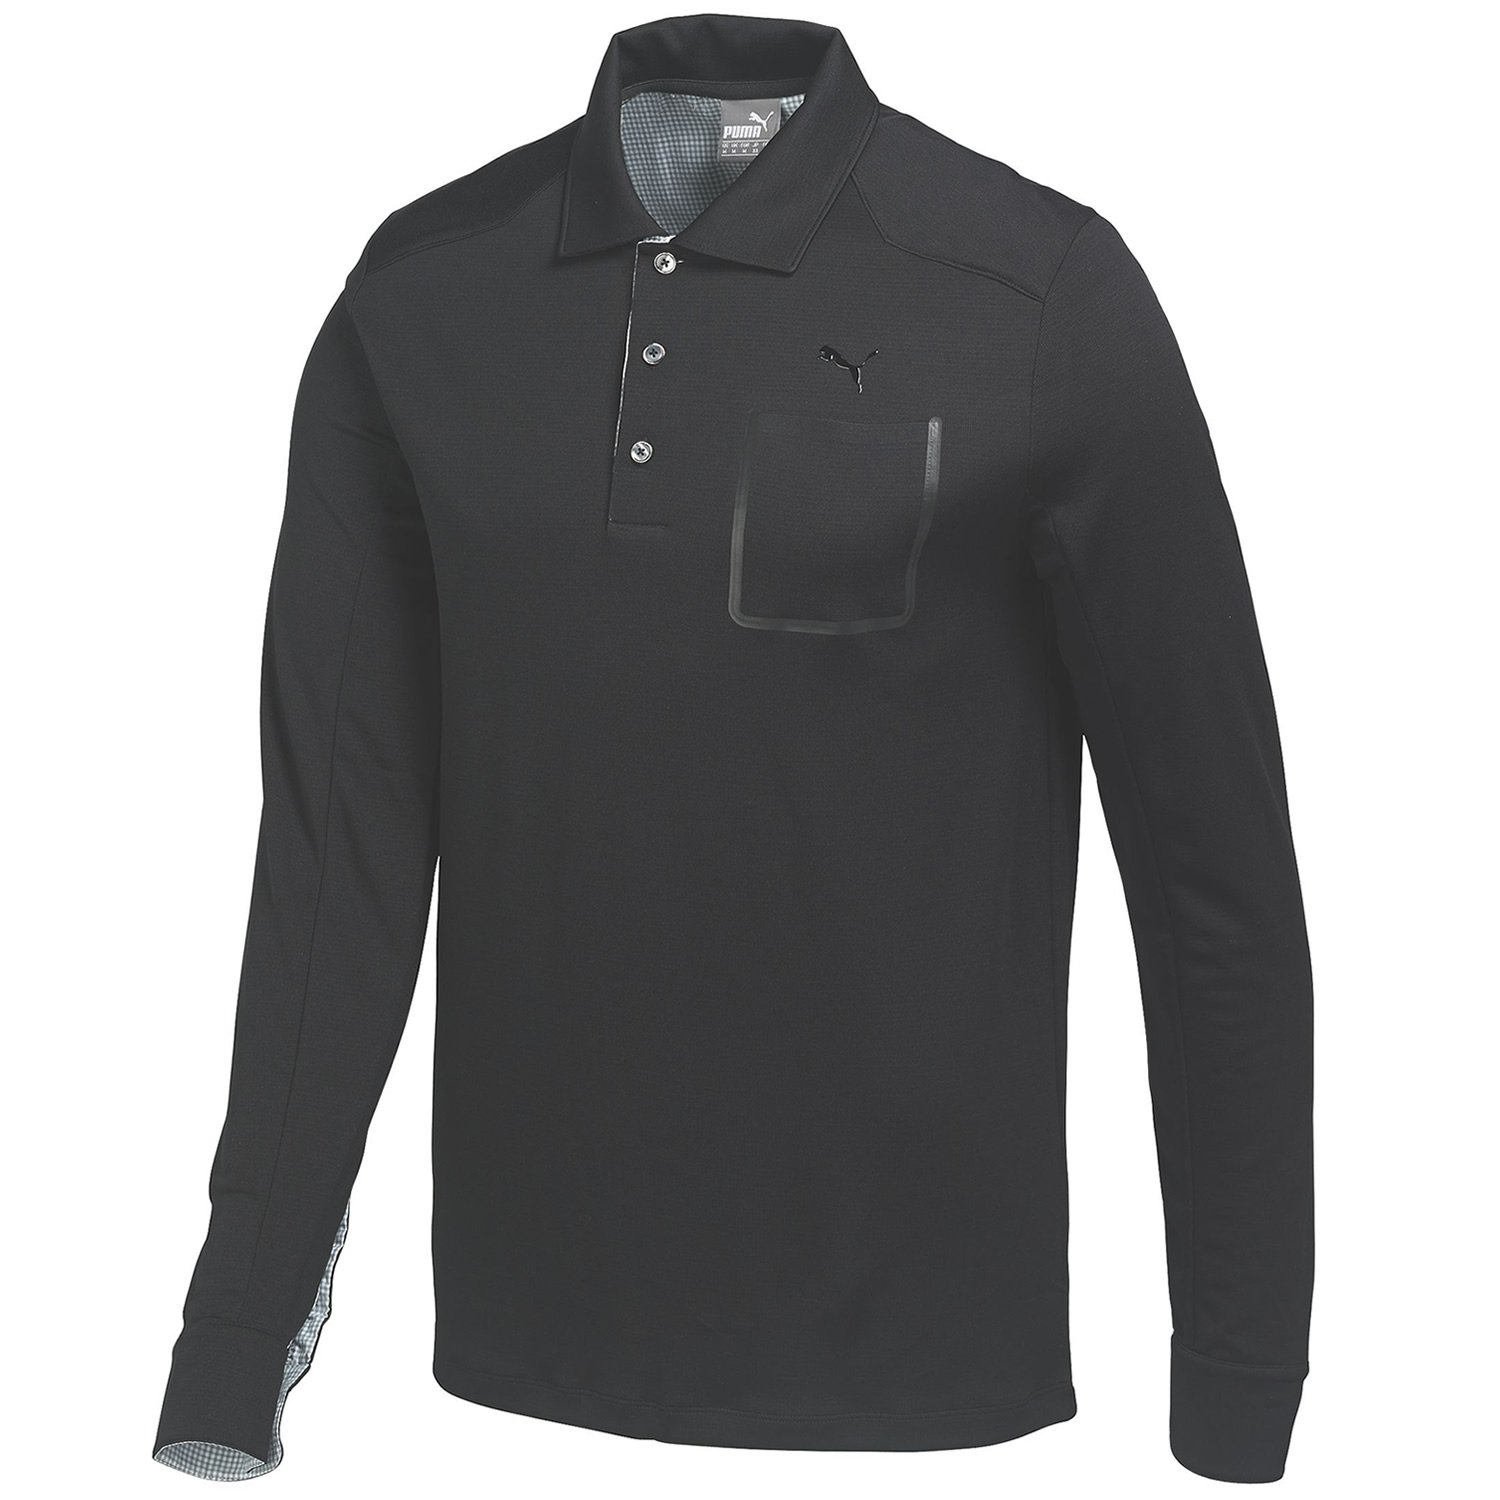 Amazon.com : Puma Golf Mens Lux Blend Long Sleeve Polo Shirt - US S - Black : Sports & Outdoors